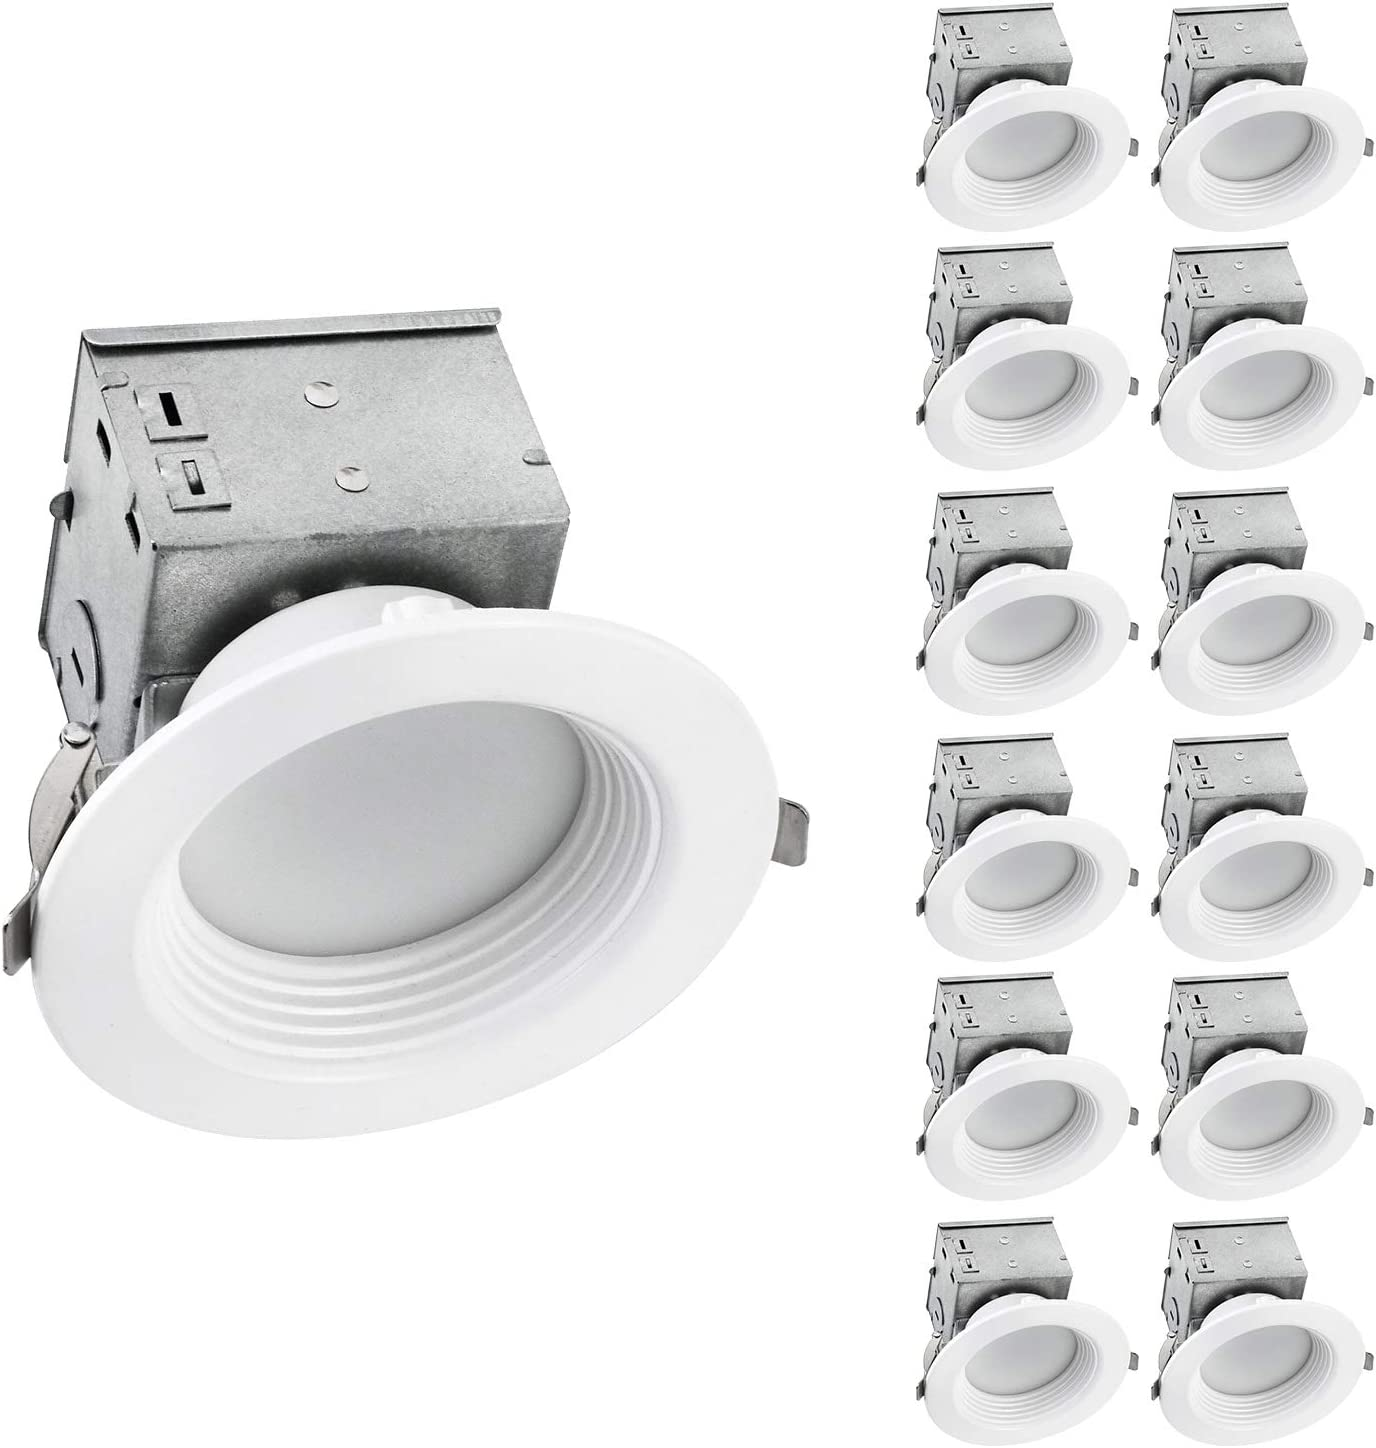 OSTWIN (12 Pack) 4 Inch Canless LED Recessed Light - Dimmable Downlight Fixture with Integrated Junction Box, 10W (75W Eqv) 800Lm, 4000K Bright White, Wet Locations, IC Rated, ETL & Energy Star Listed